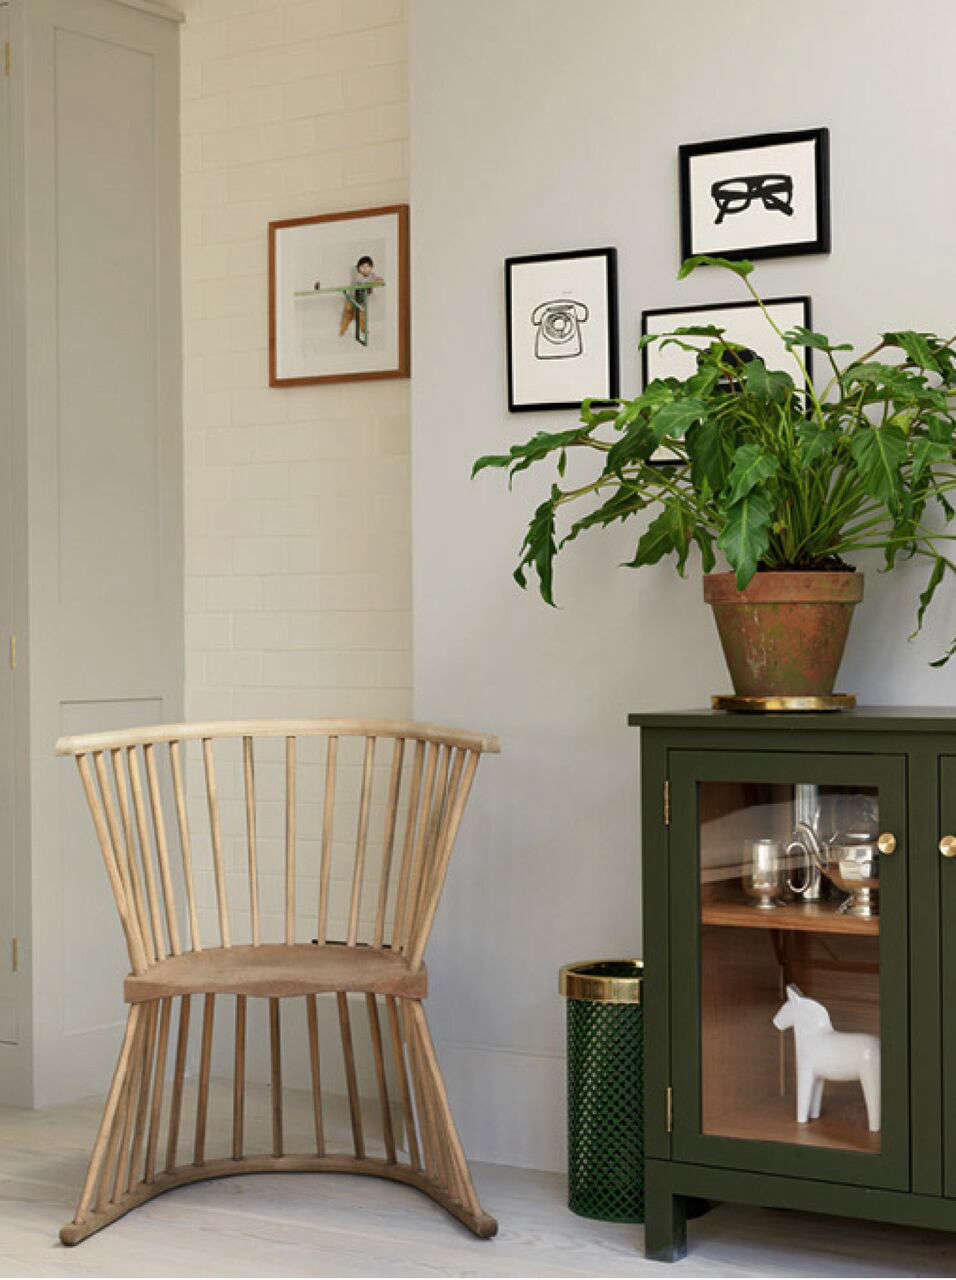 A Notting Hill Townhouse Tailored for Living by Charles Mellersh Howe Flip Chair in a remodeled Notting Hill townhouse with interior design by Charles Mellersh   Remodelista